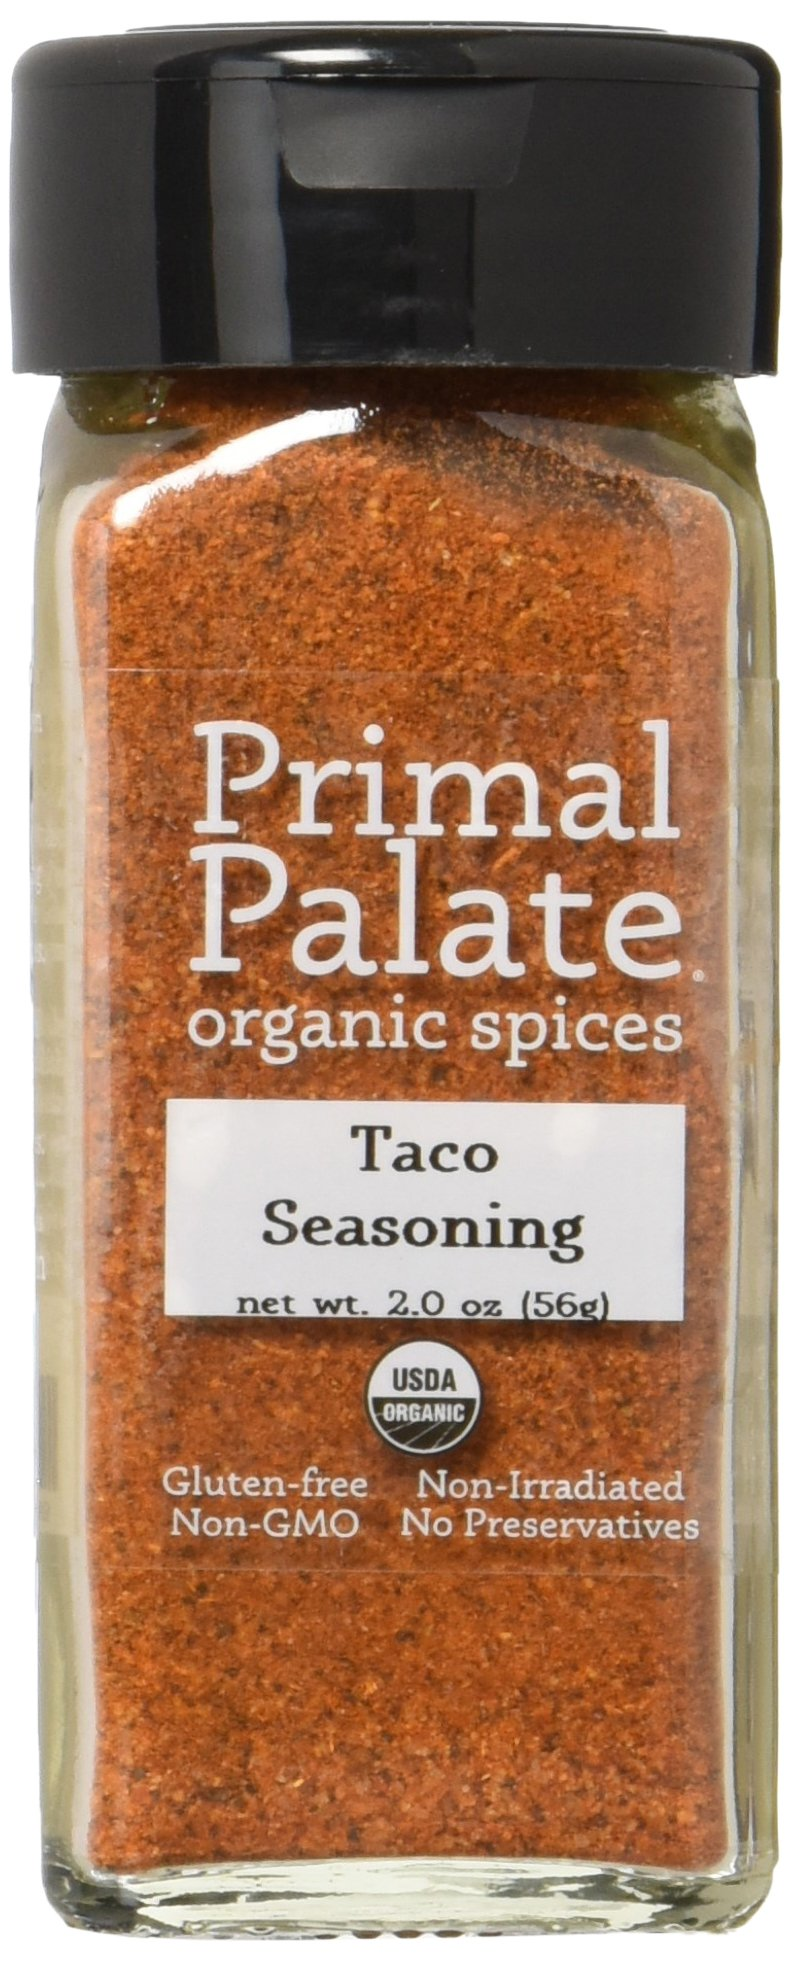 Primal Palate Organic Spices Taco Seasoning, Certified Organic, 2.0 oz Bottle